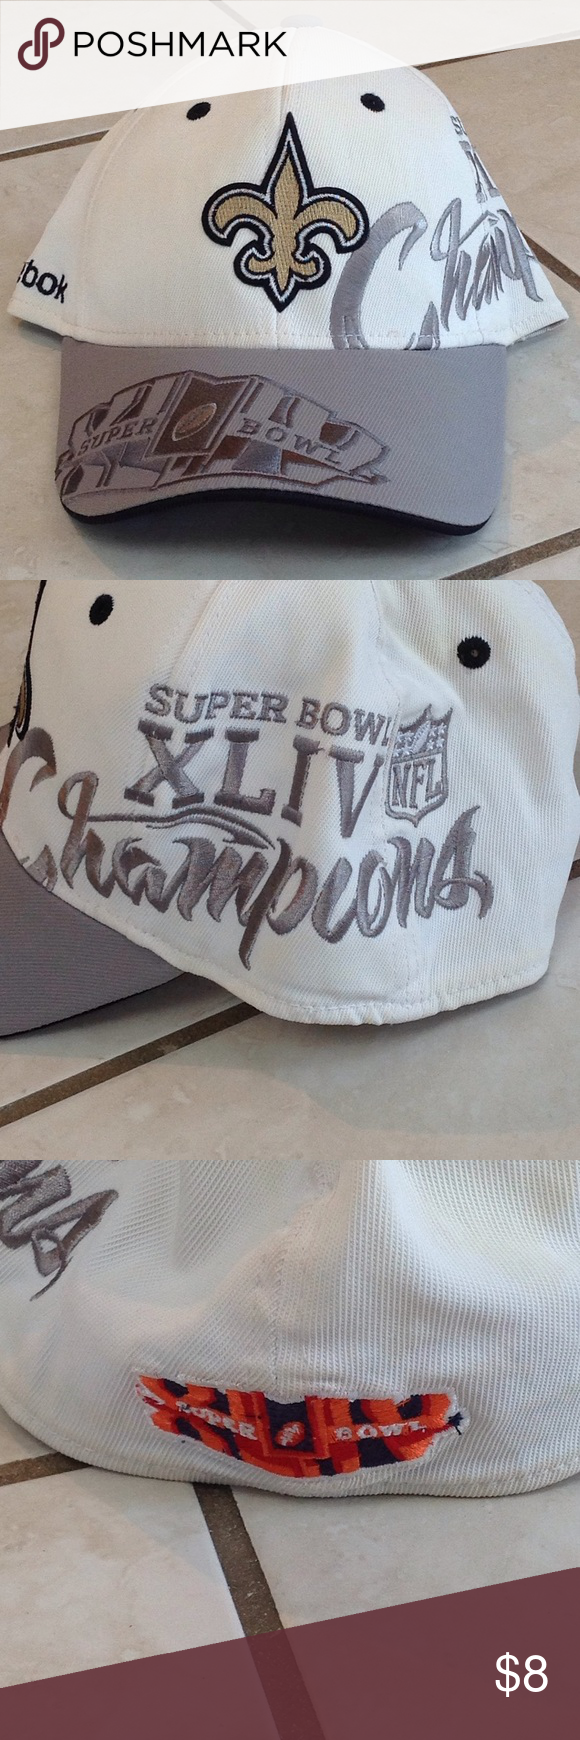 New Orleans Saints Super Bowl Chanps Hat In decent condition, but can tell it has been worn. Says one size fits all, but feels a bit snug on a large adult head Reebok Accessories Hats